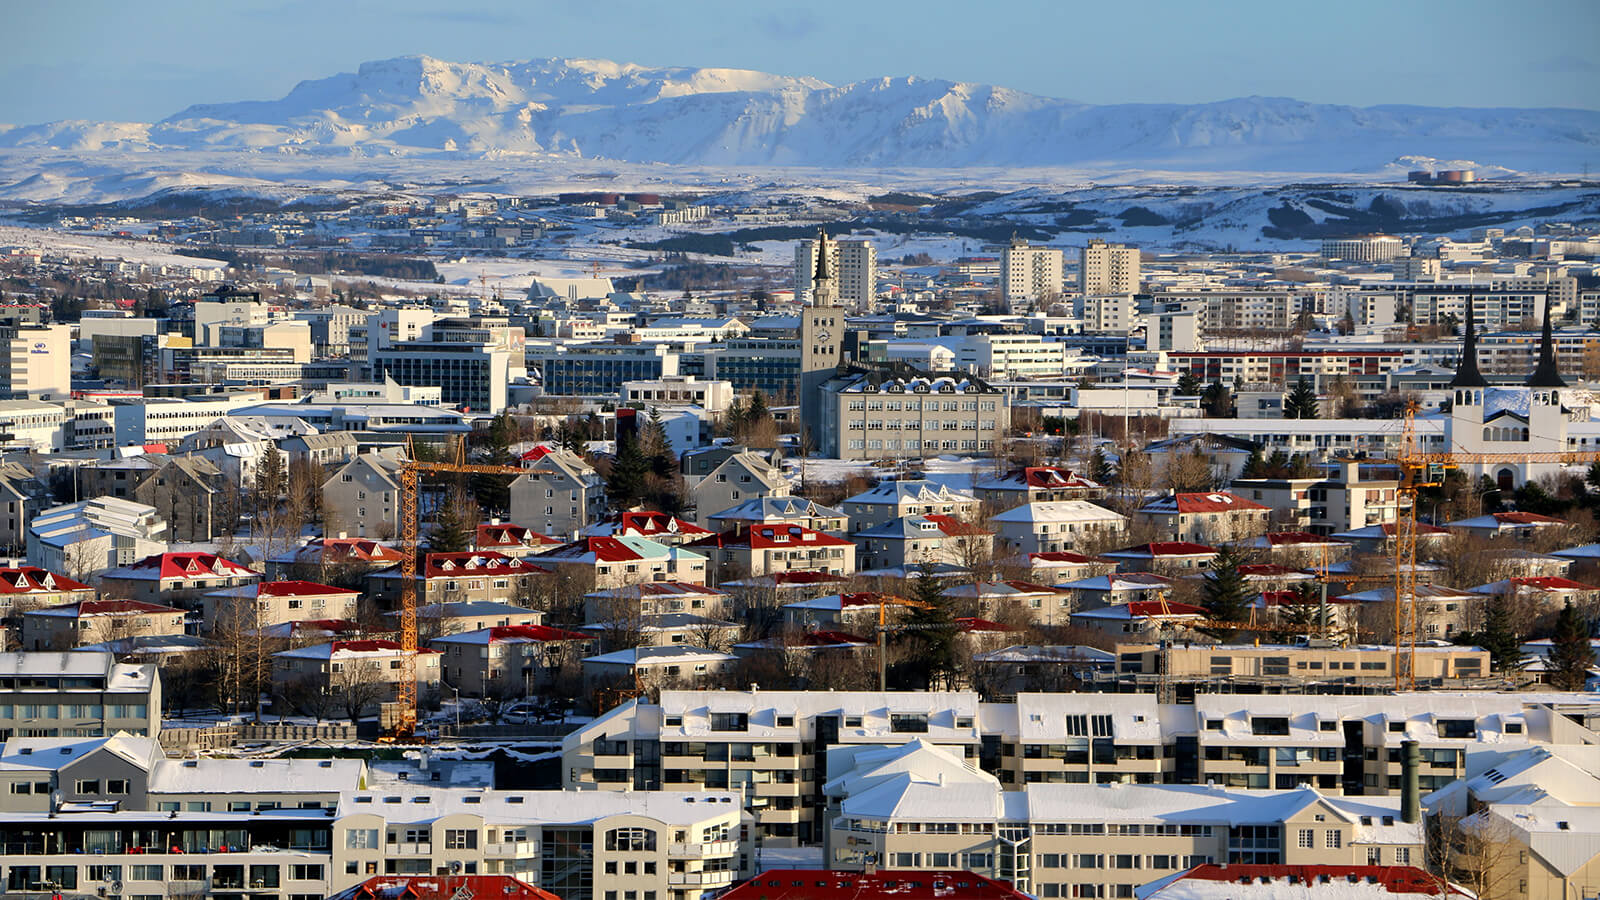 Rooftop mountain view of Reykjavik, Iceland, one of the best destinations for solo female travelers